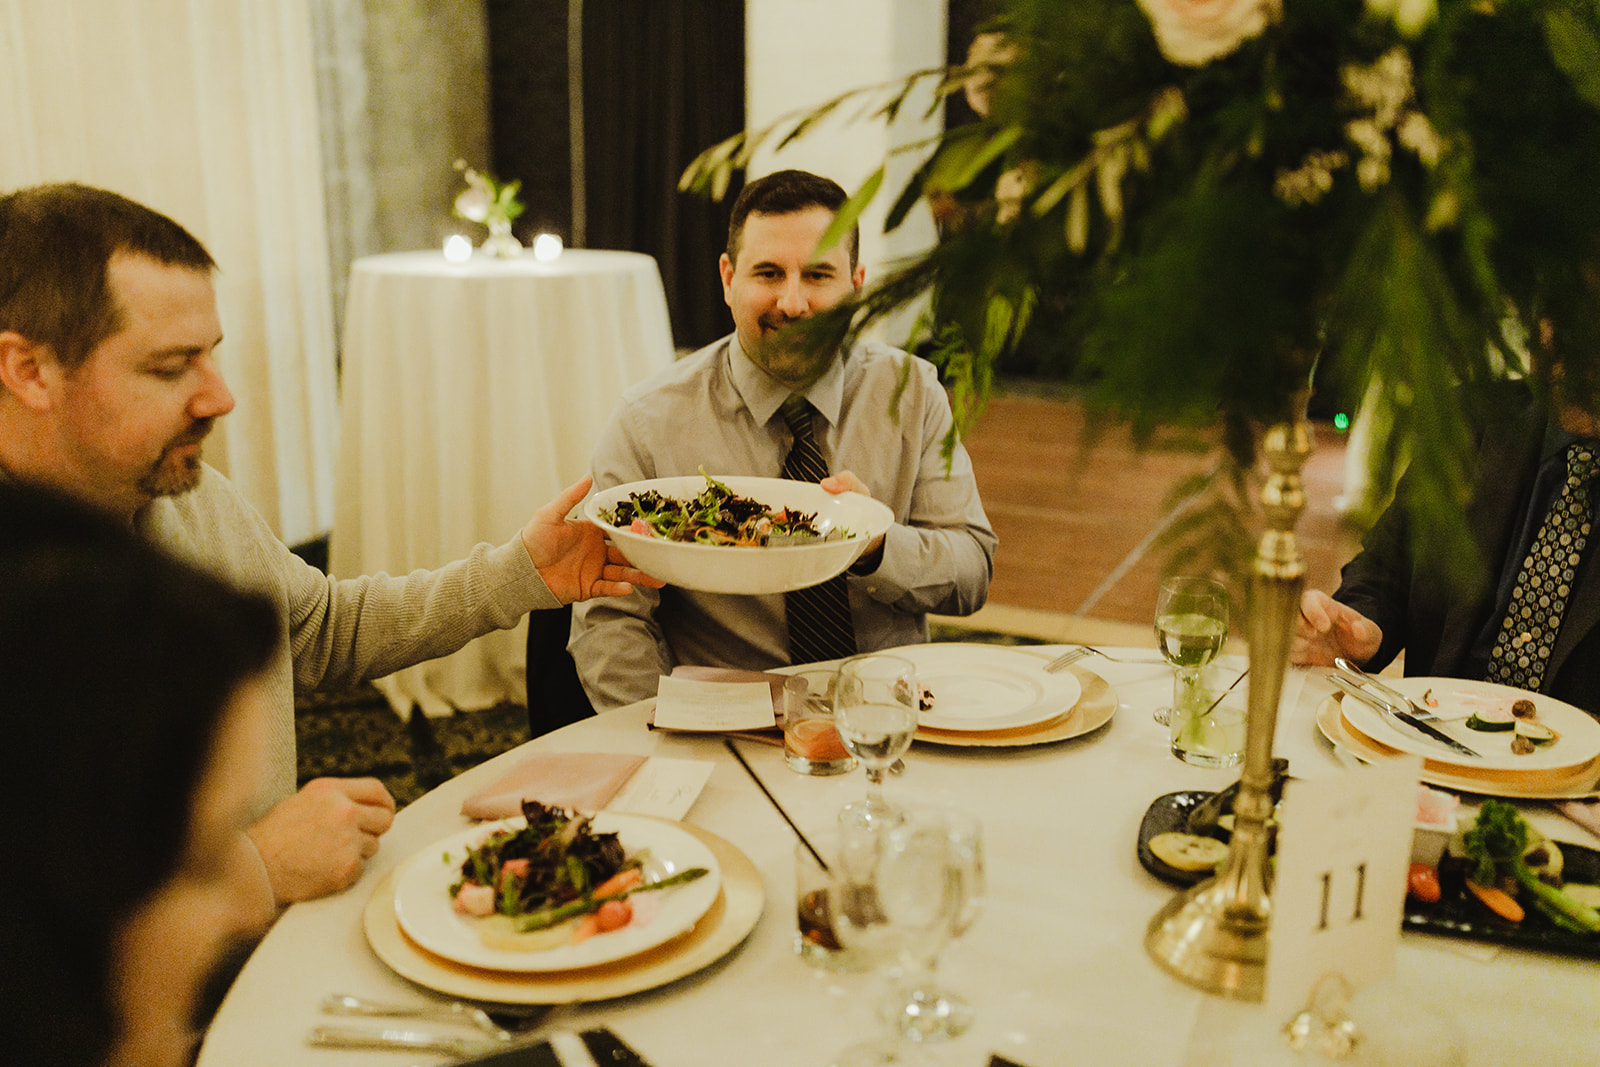 Guests passing around a plate of food during a Grand Rapids, Michigan wedding